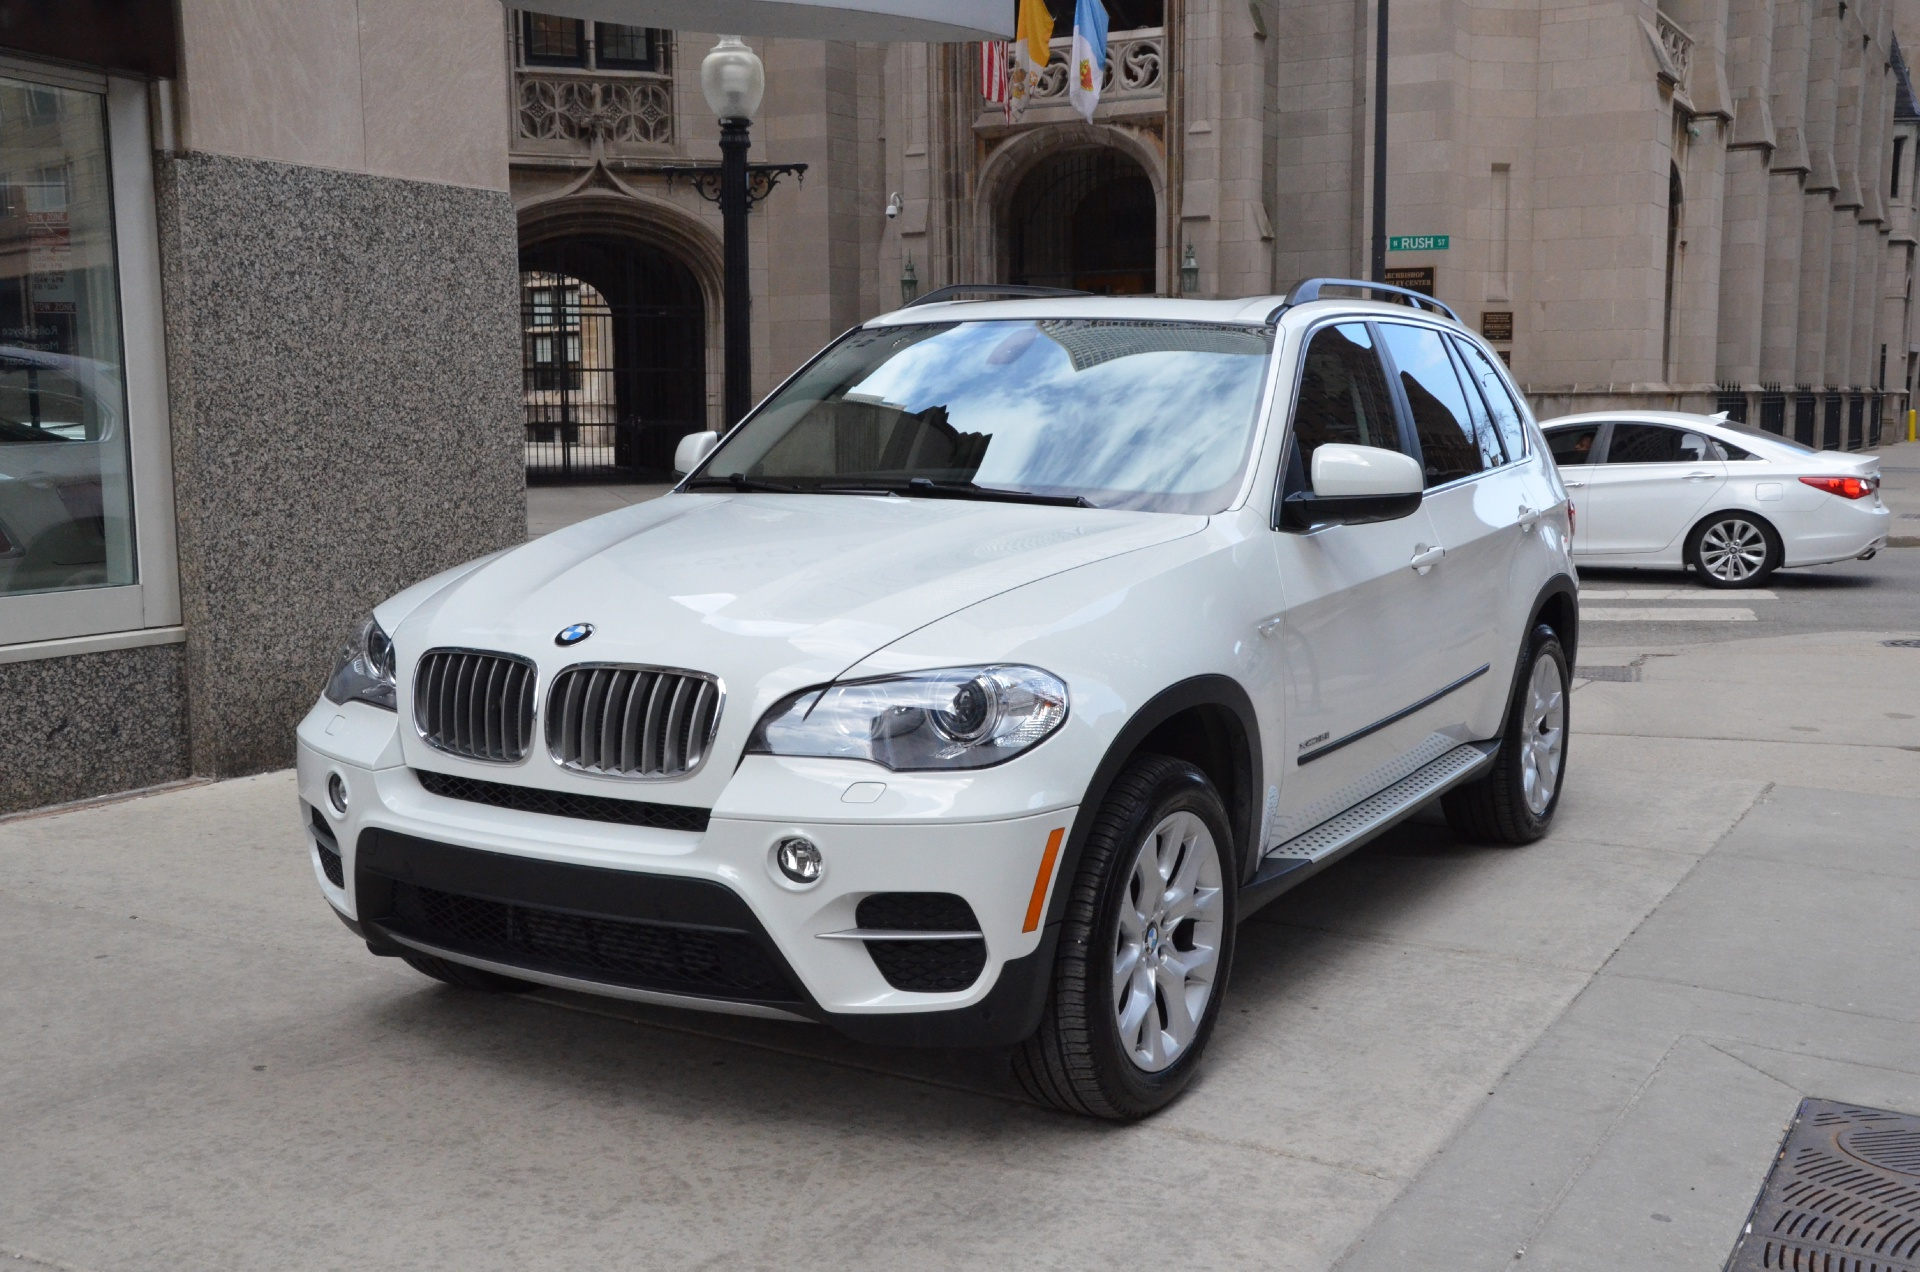 2013 bmw x5 xdrive35i stock m308a for sale near chicago. Black Bedroom Furniture Sets. Home Design Ideas